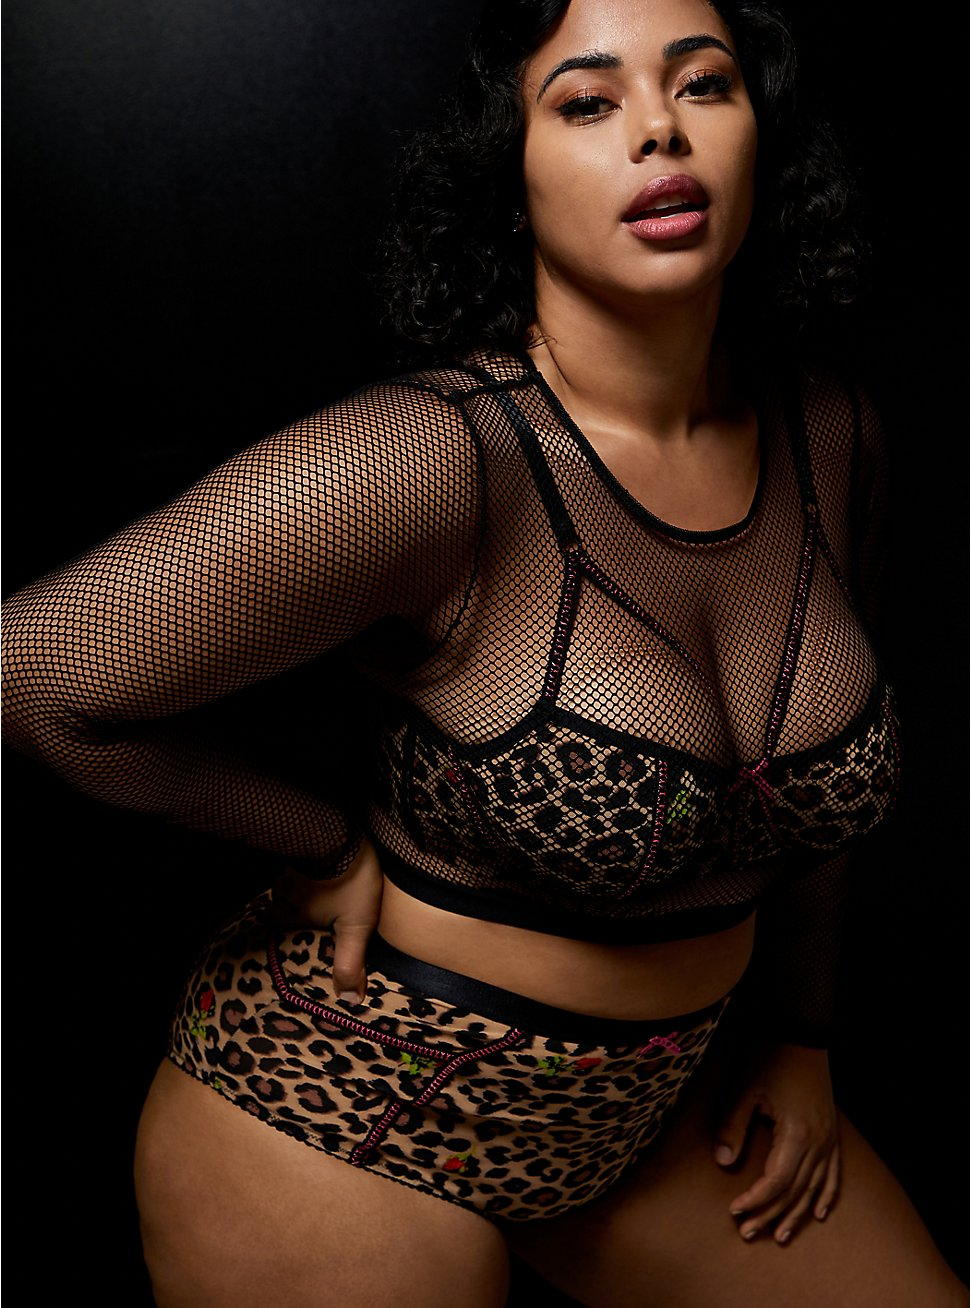 Betsey Johnson Fishnet Long Sleeve Under-It-All Crop Top and High Waist Cheeky Panty, , hi-res